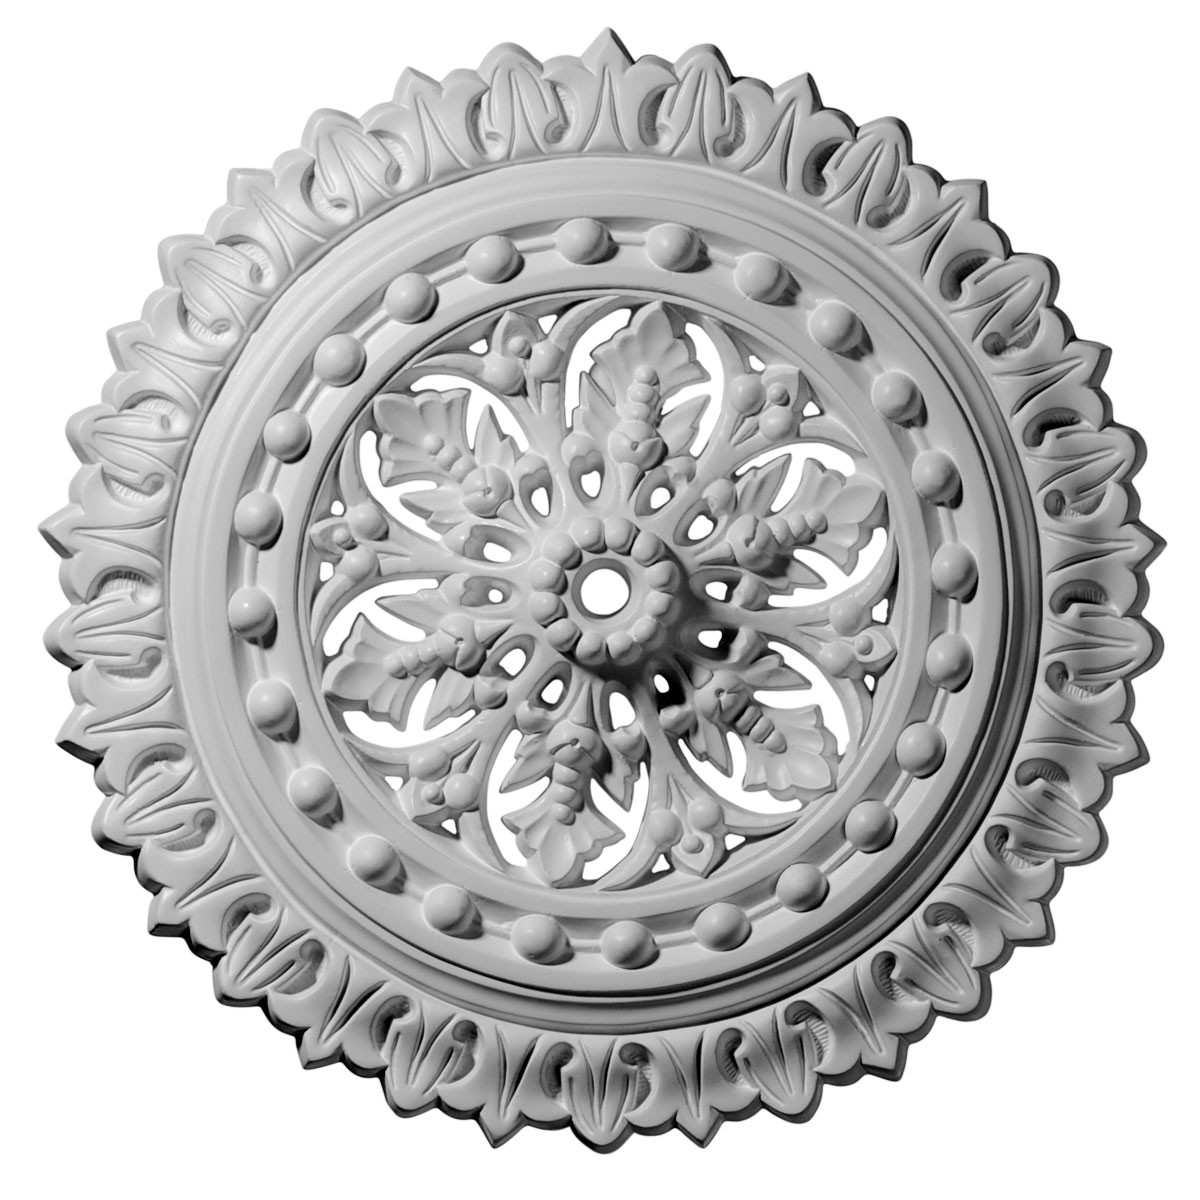 "EM-CM18SK - 18 1/2""OD x 7/8""ID x 1 1/2""P Sellek Ceiling Medallion (Fits Canopies up to 1 1/8"")"